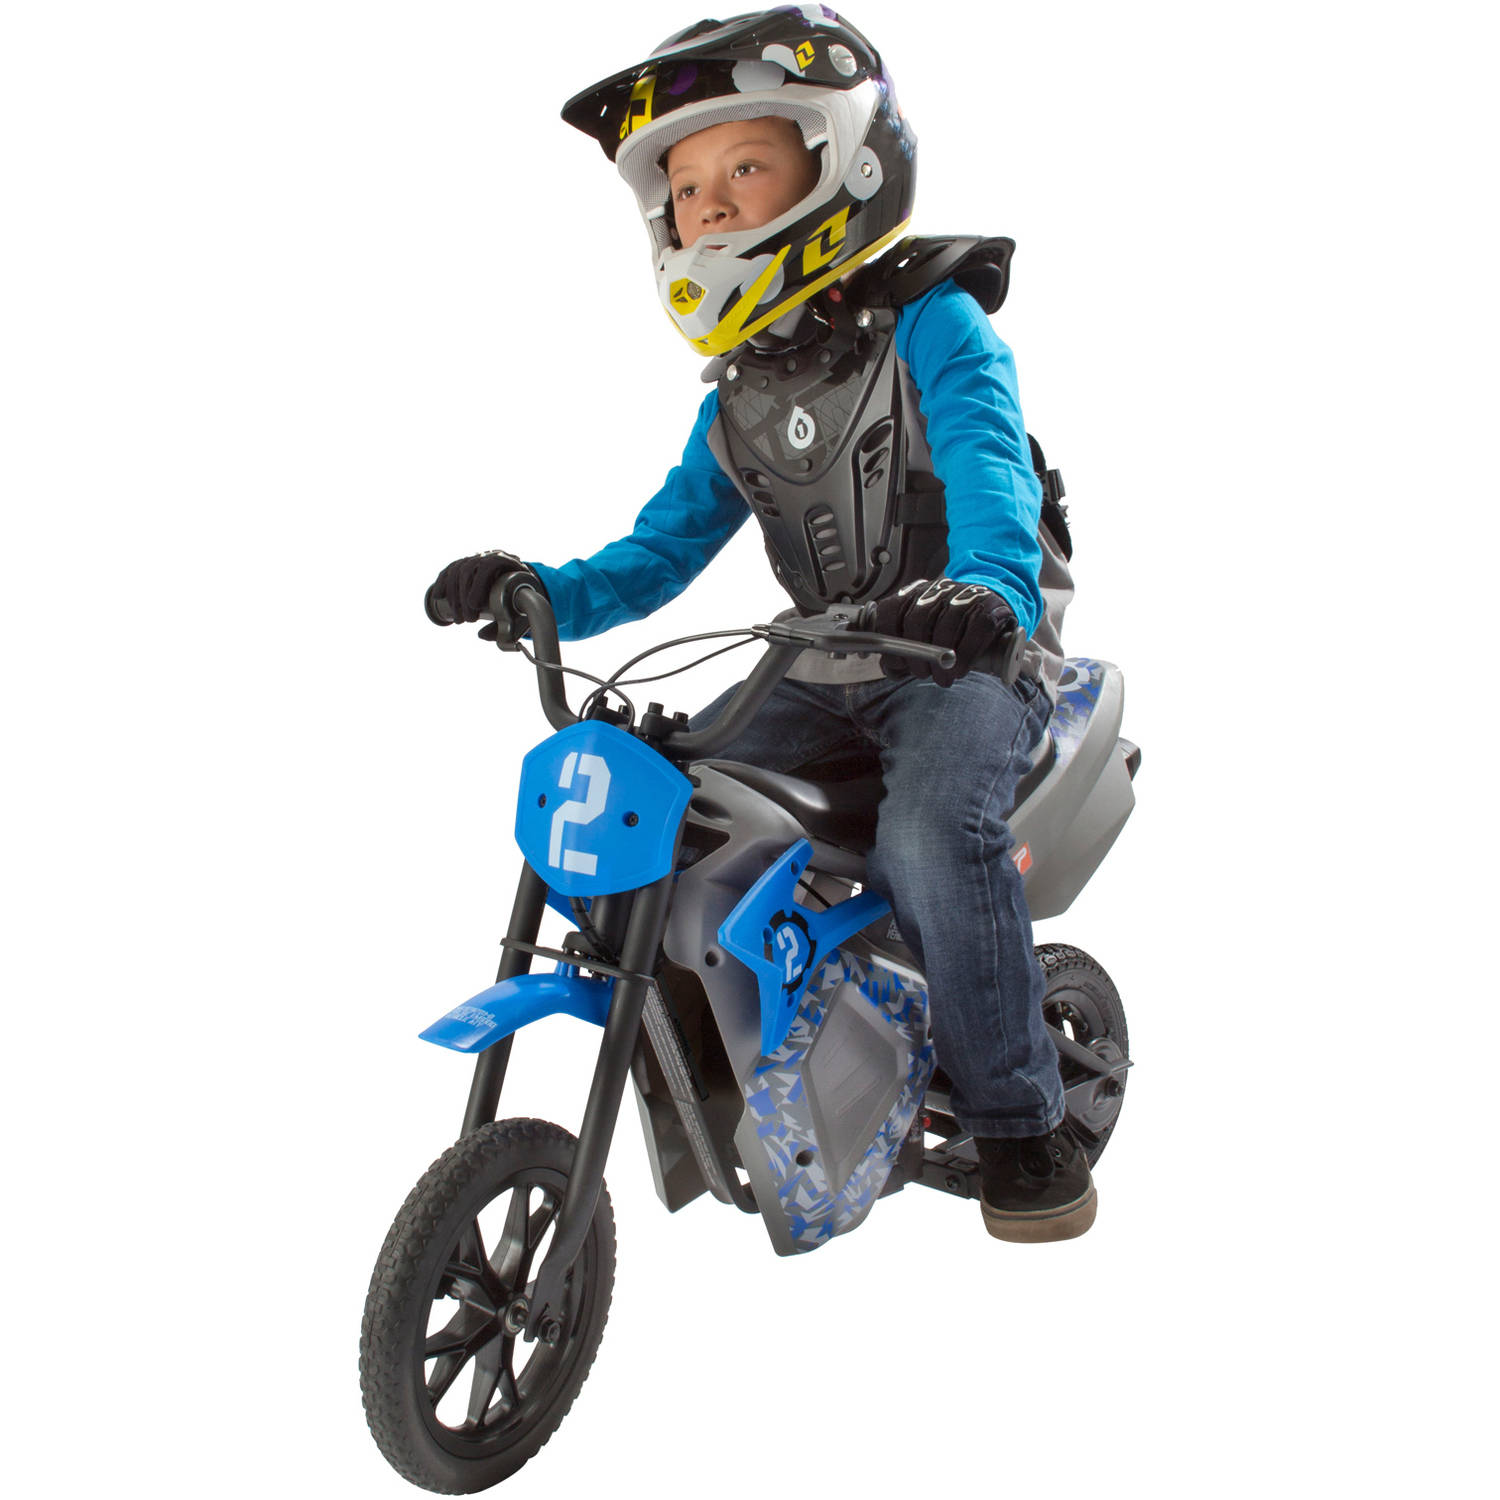 Pulse Performance EM-1000 Electric Dirt Bike, Blue